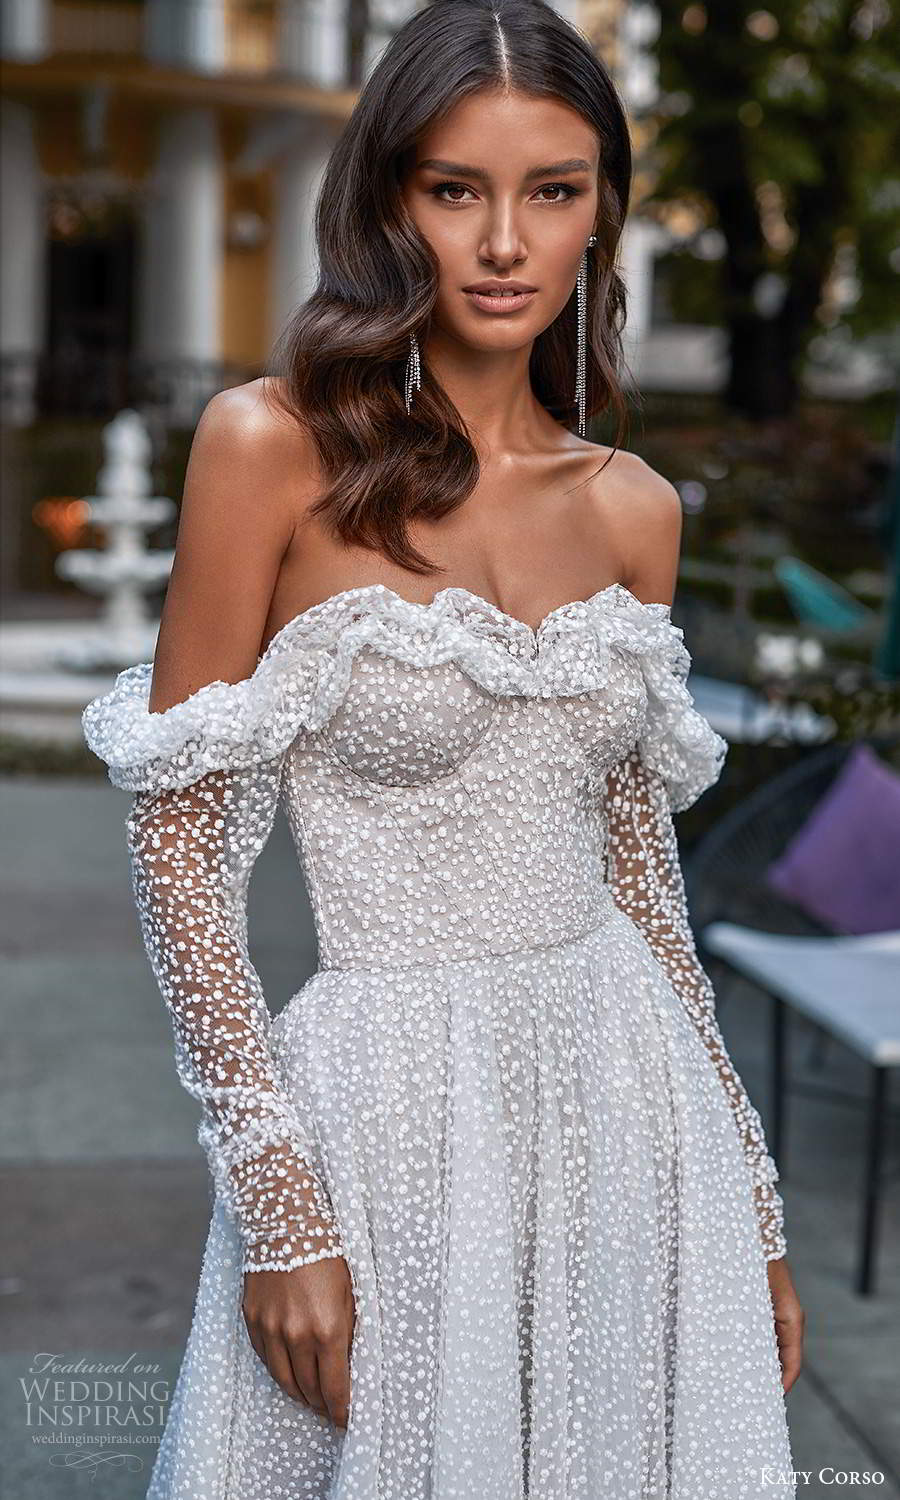 katy corso 2021 bridal off shoulder long sleeves sweetheart neckline fully embellished a line ball gown wedding dress chapel train (13) zv